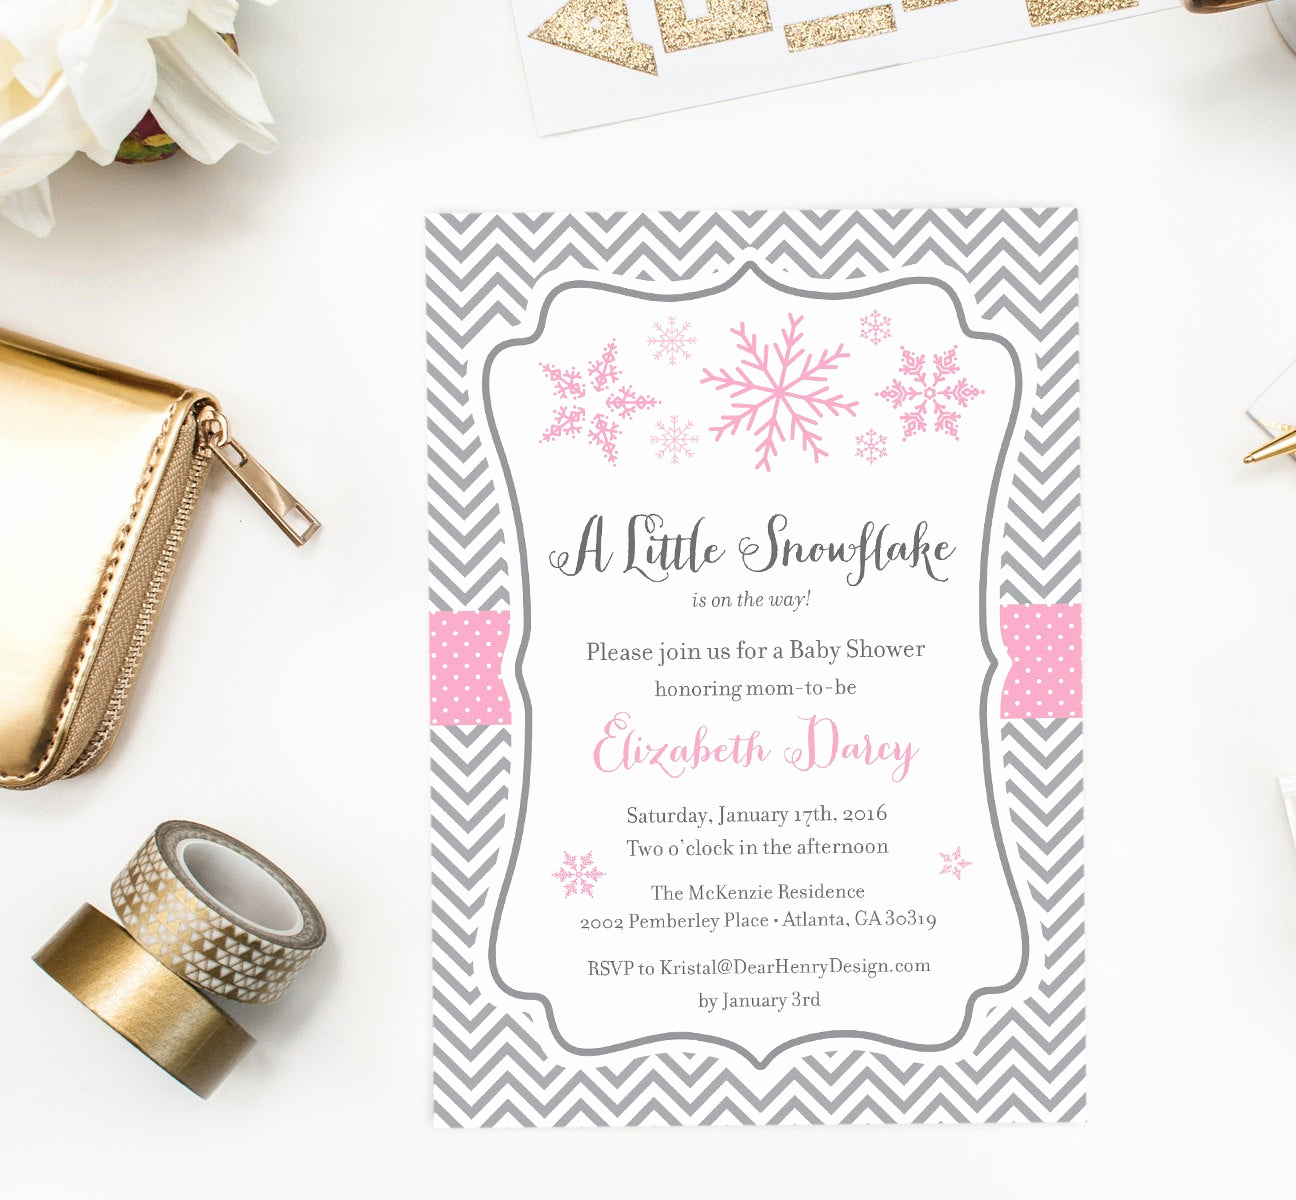 Winter Baby Shower Invitation Elegant Little Snowflake Baby Shower Invitation Winter Wonderland